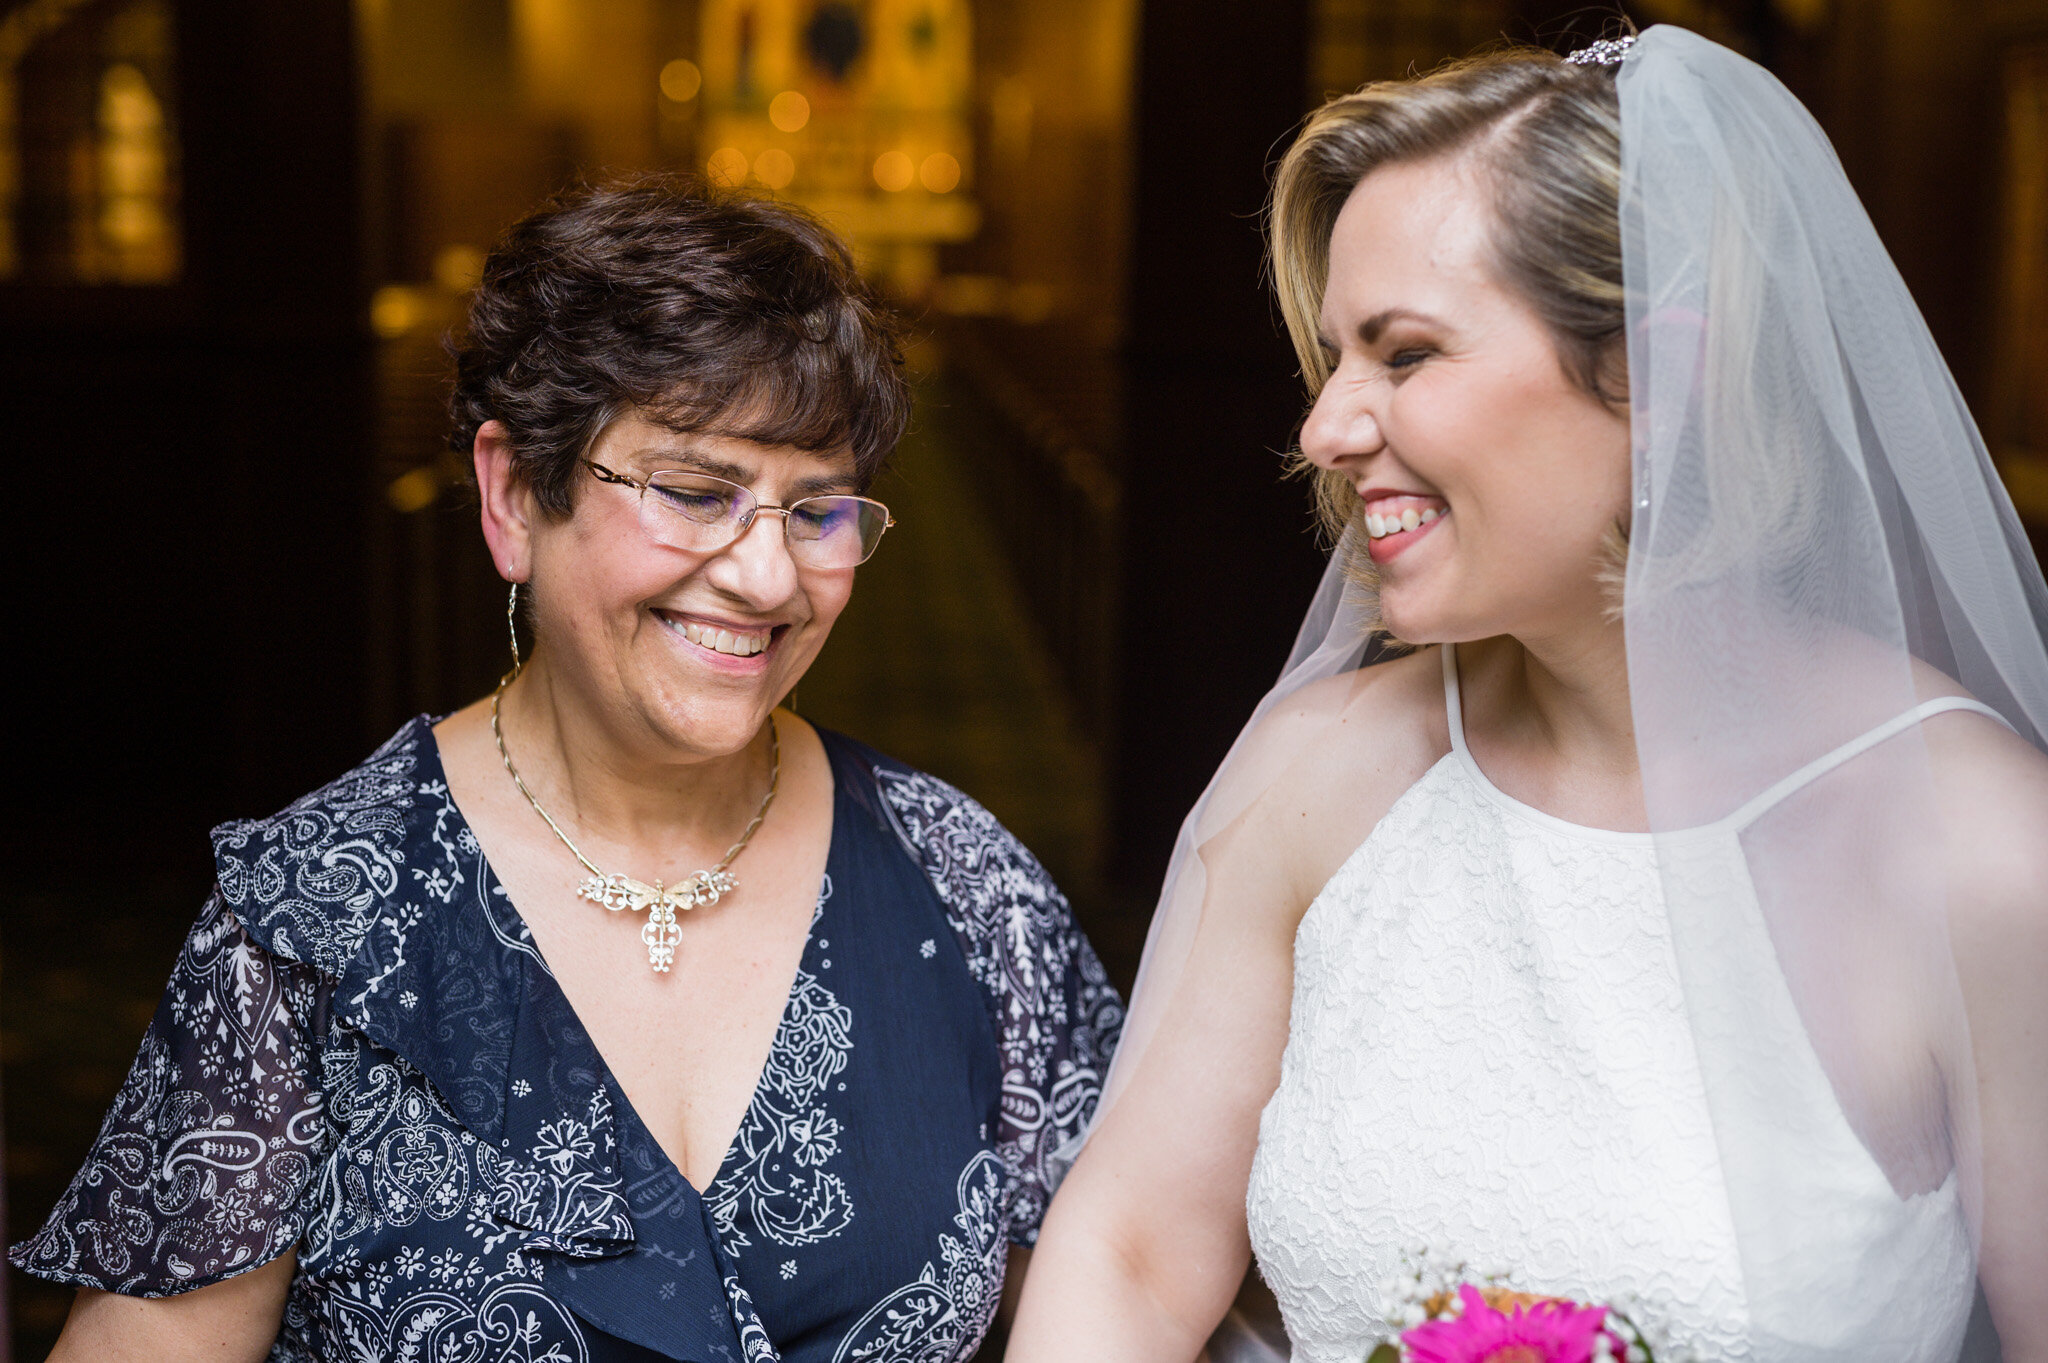 Mother and daughter sharing a moment together on her wedding day